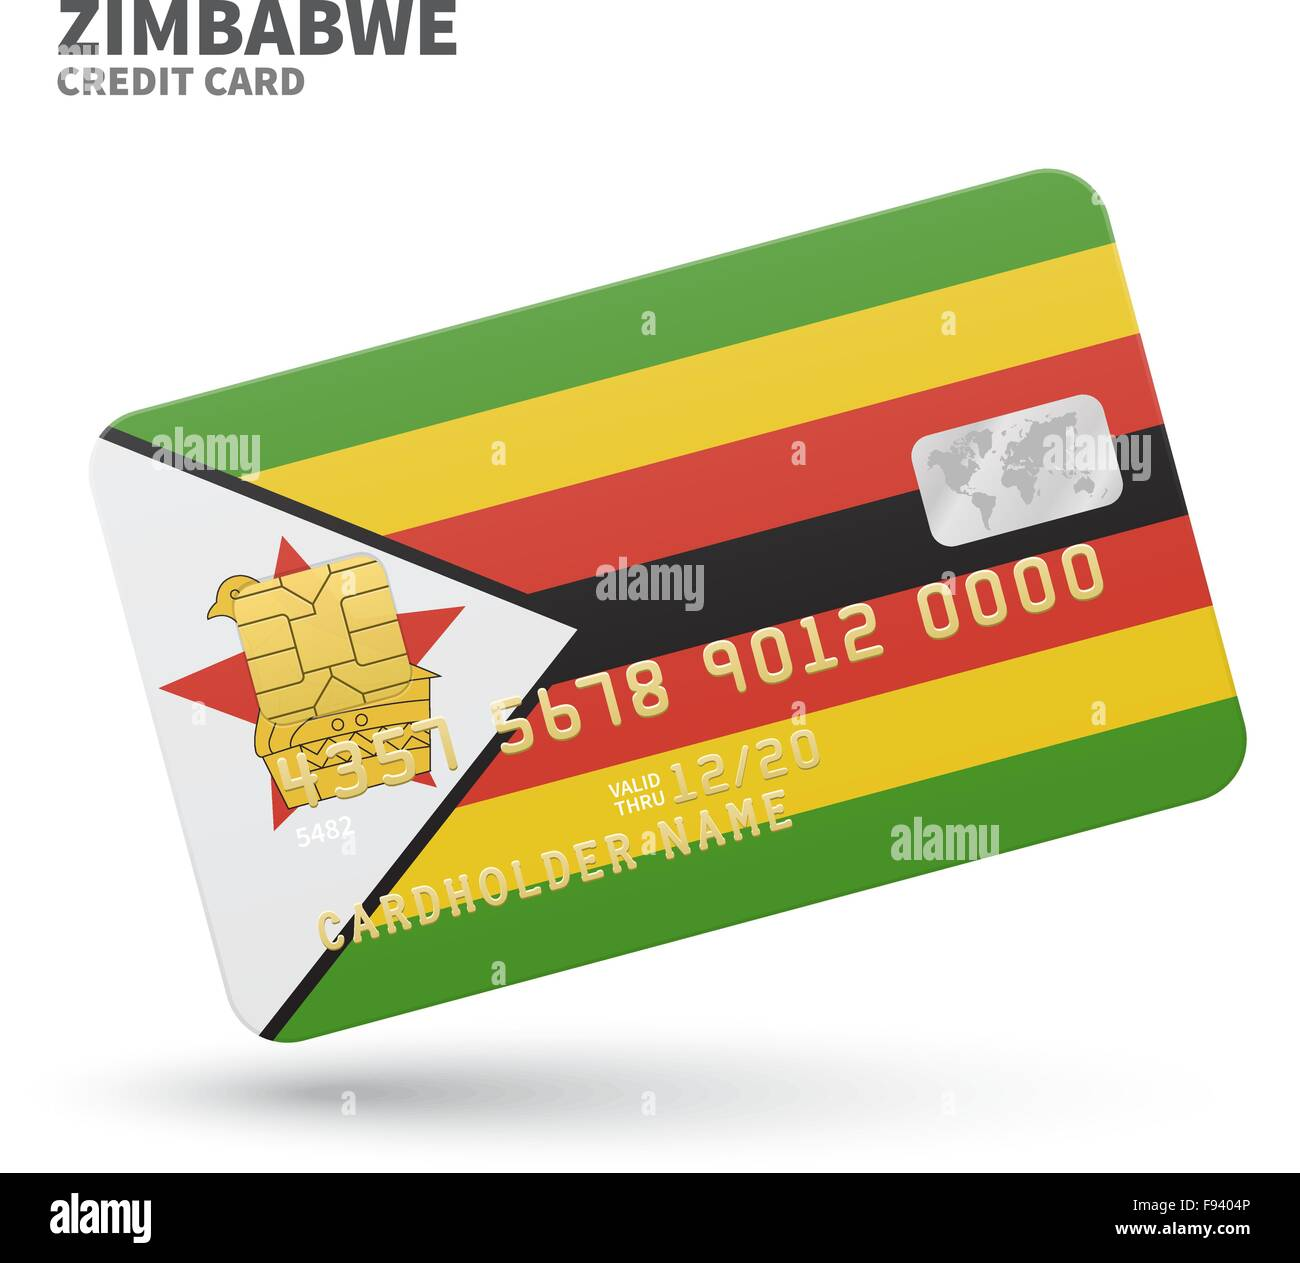 Credit card with zimbabwe flag background for bank presentations credit card with zimbabwe flag background for bank presentations and business isolated on white reheart Image collections